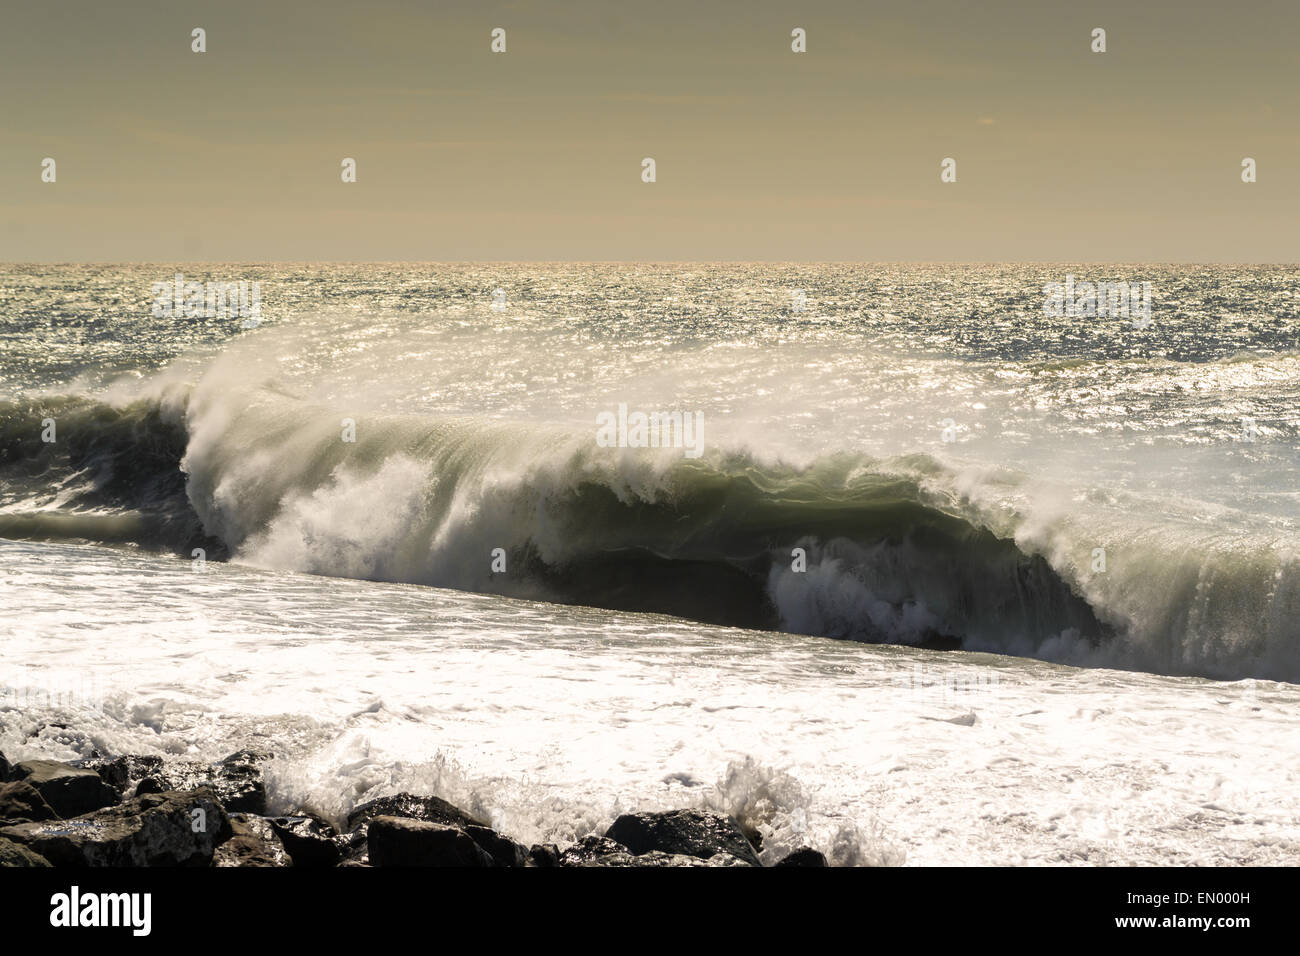 Rolling waves start to crest into a breaking wave onto a stony beach - Stock Image